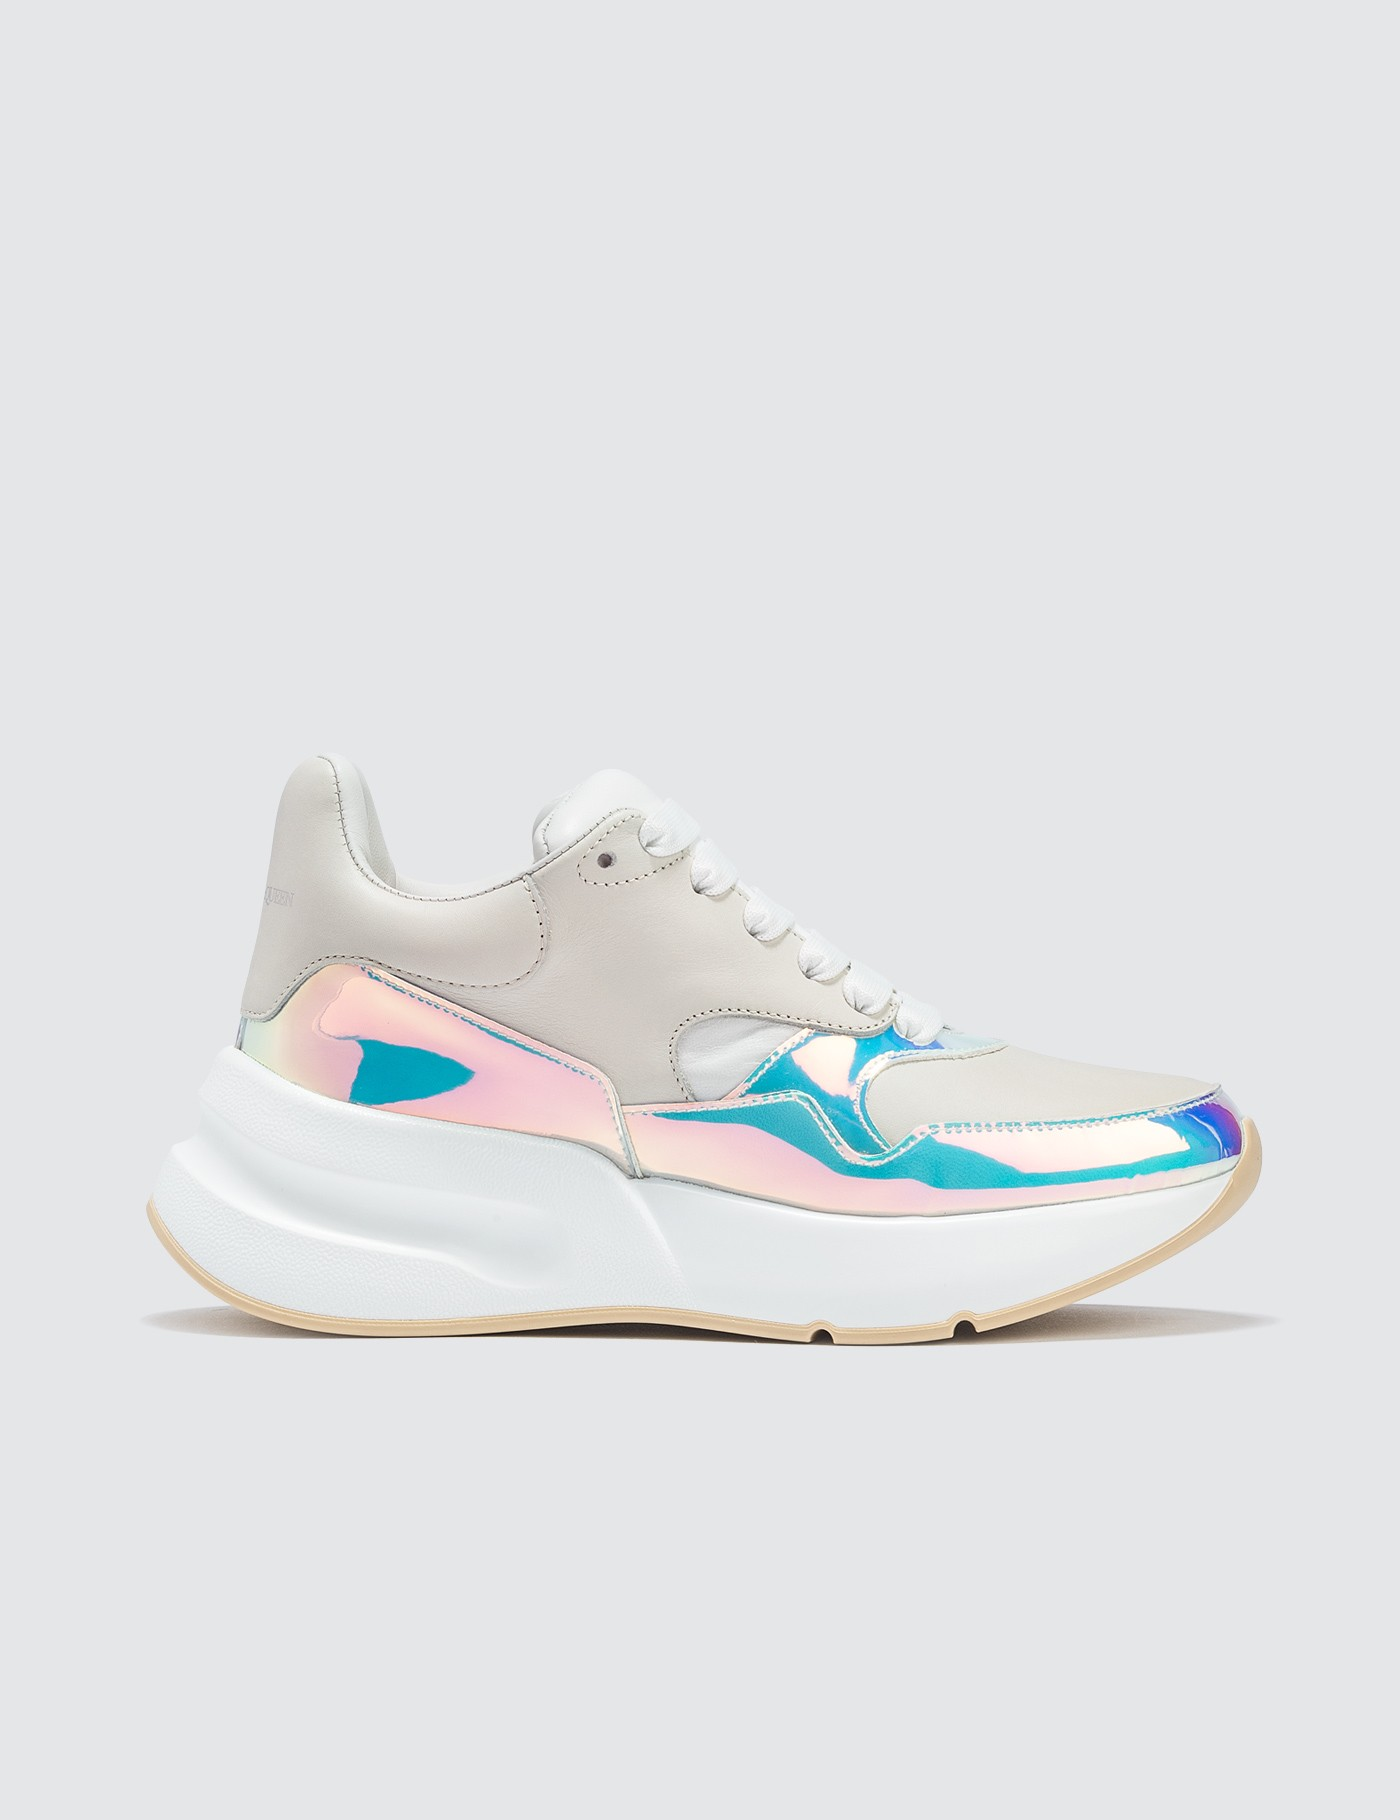 Chunky Sneakers with Metallic Lining